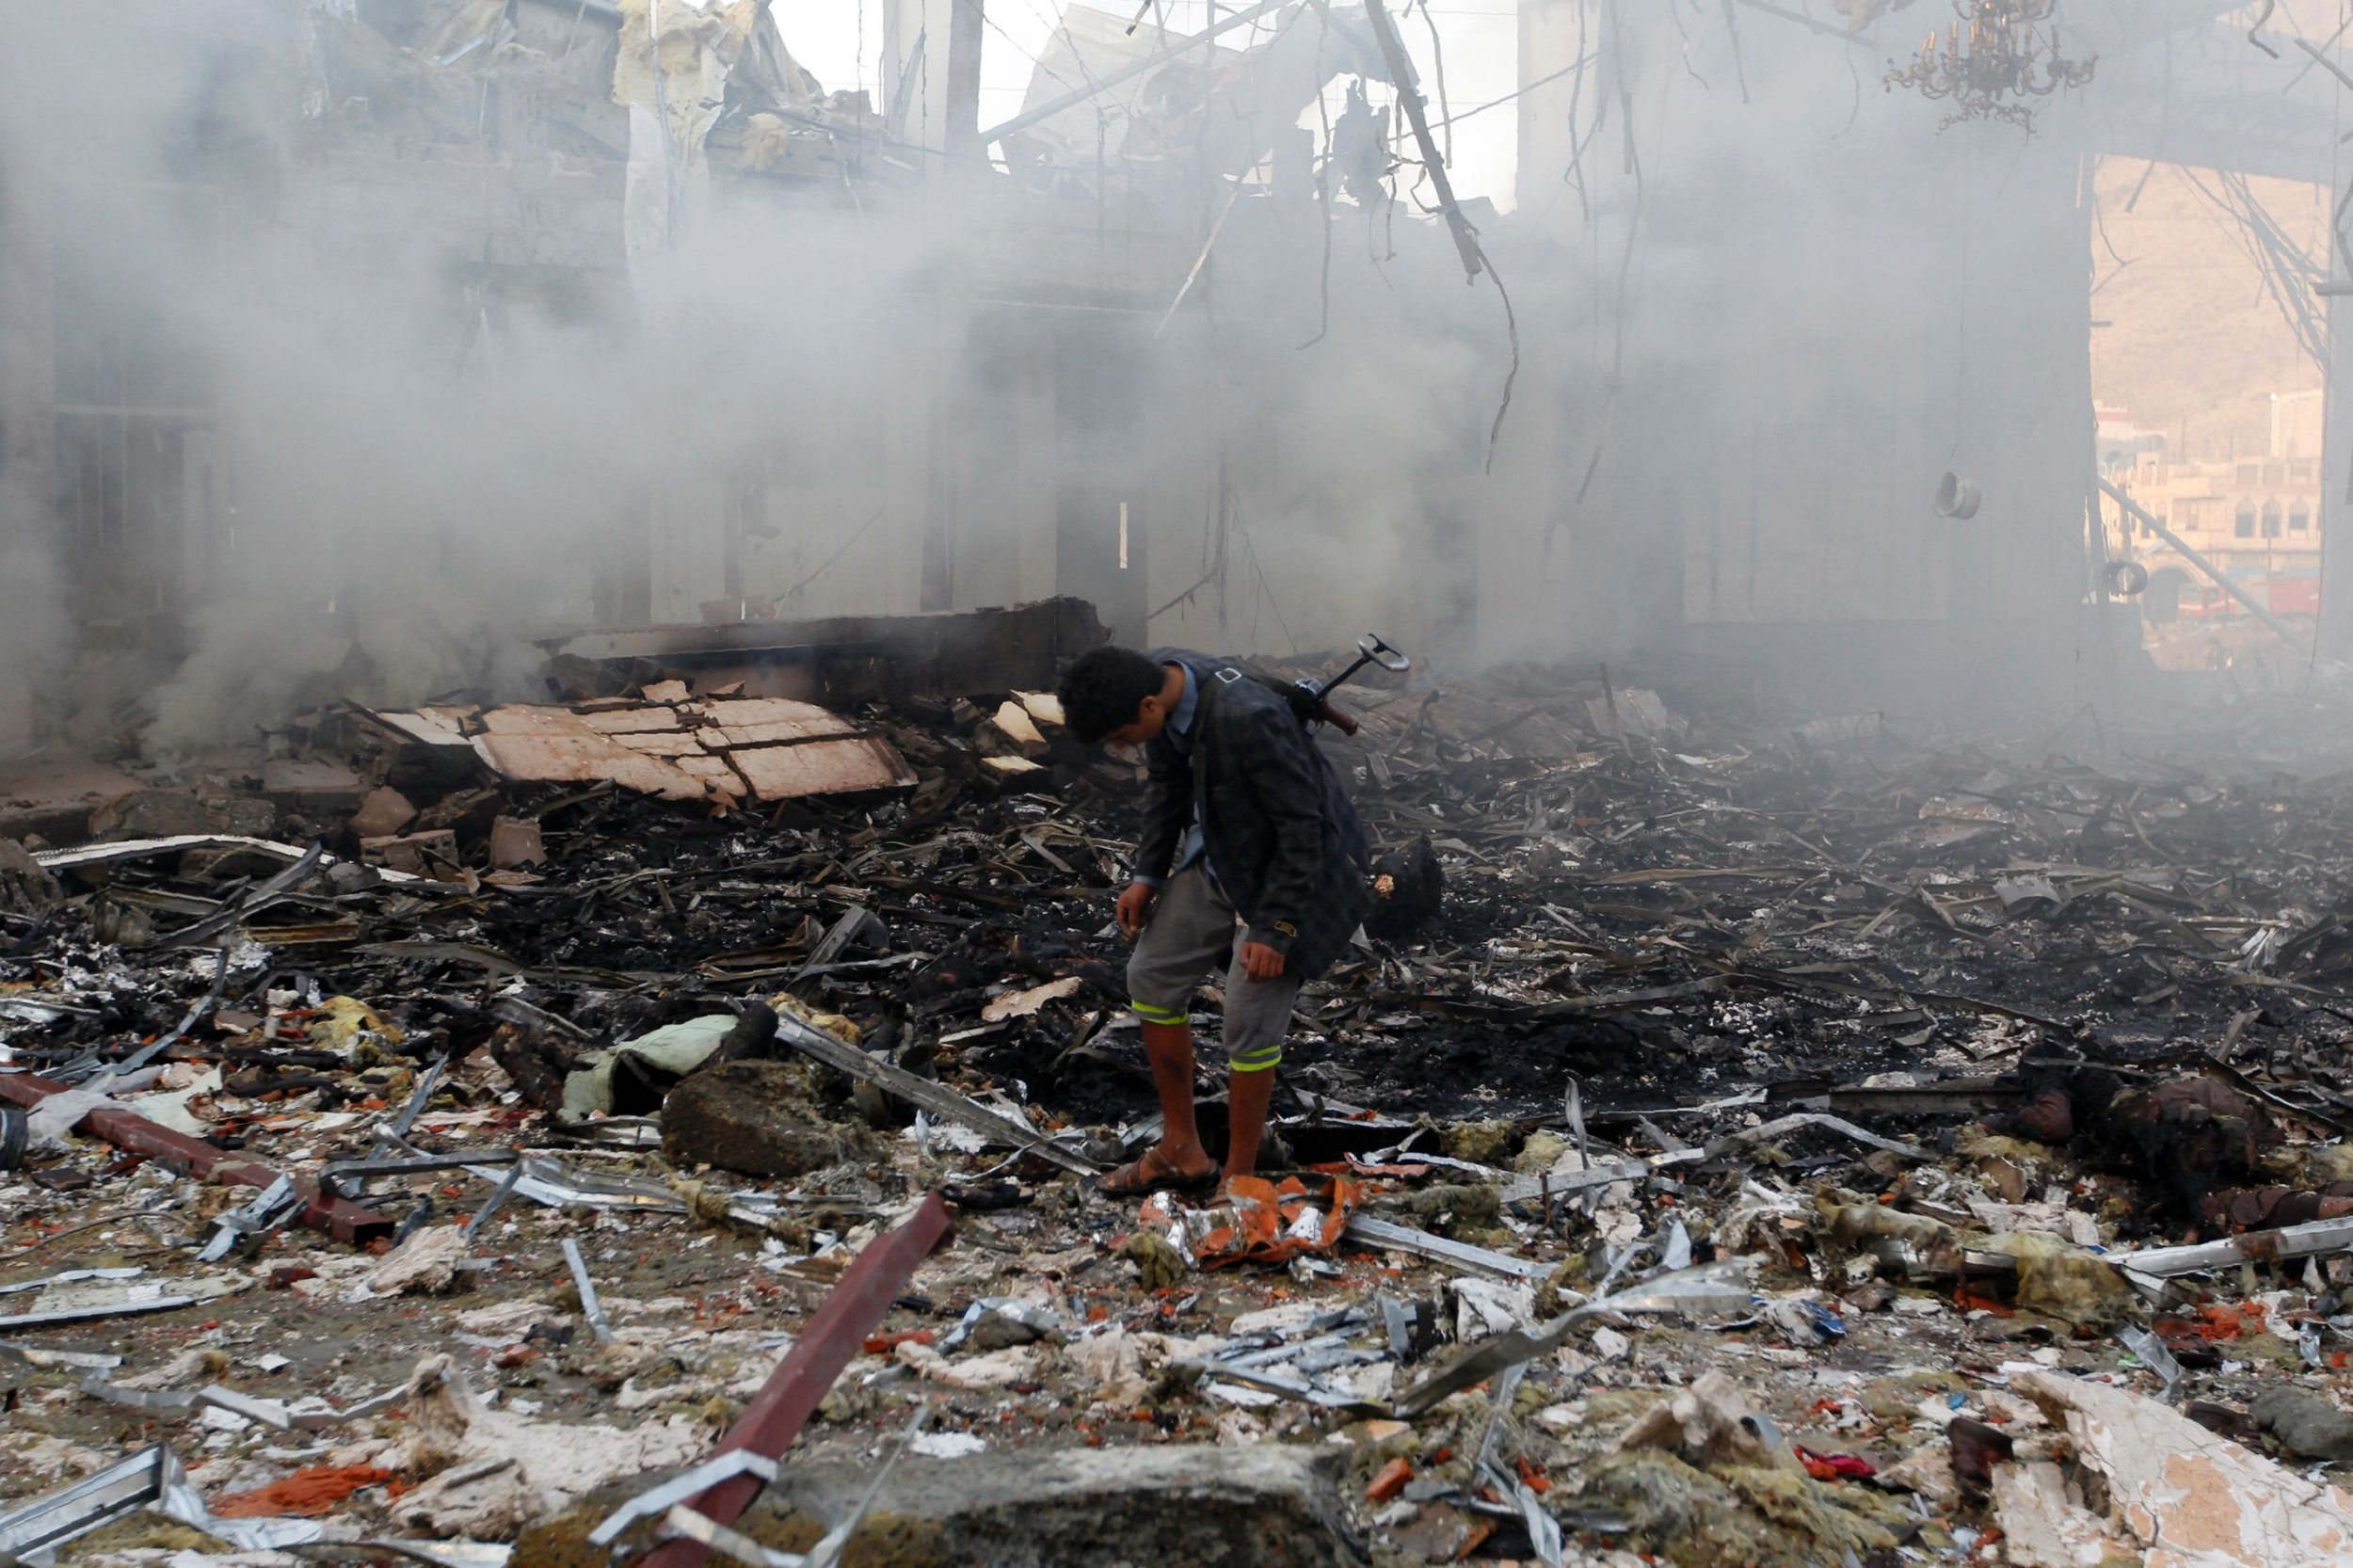 Saudi coalition admits it was behind bombing of funeral hall that killed 140